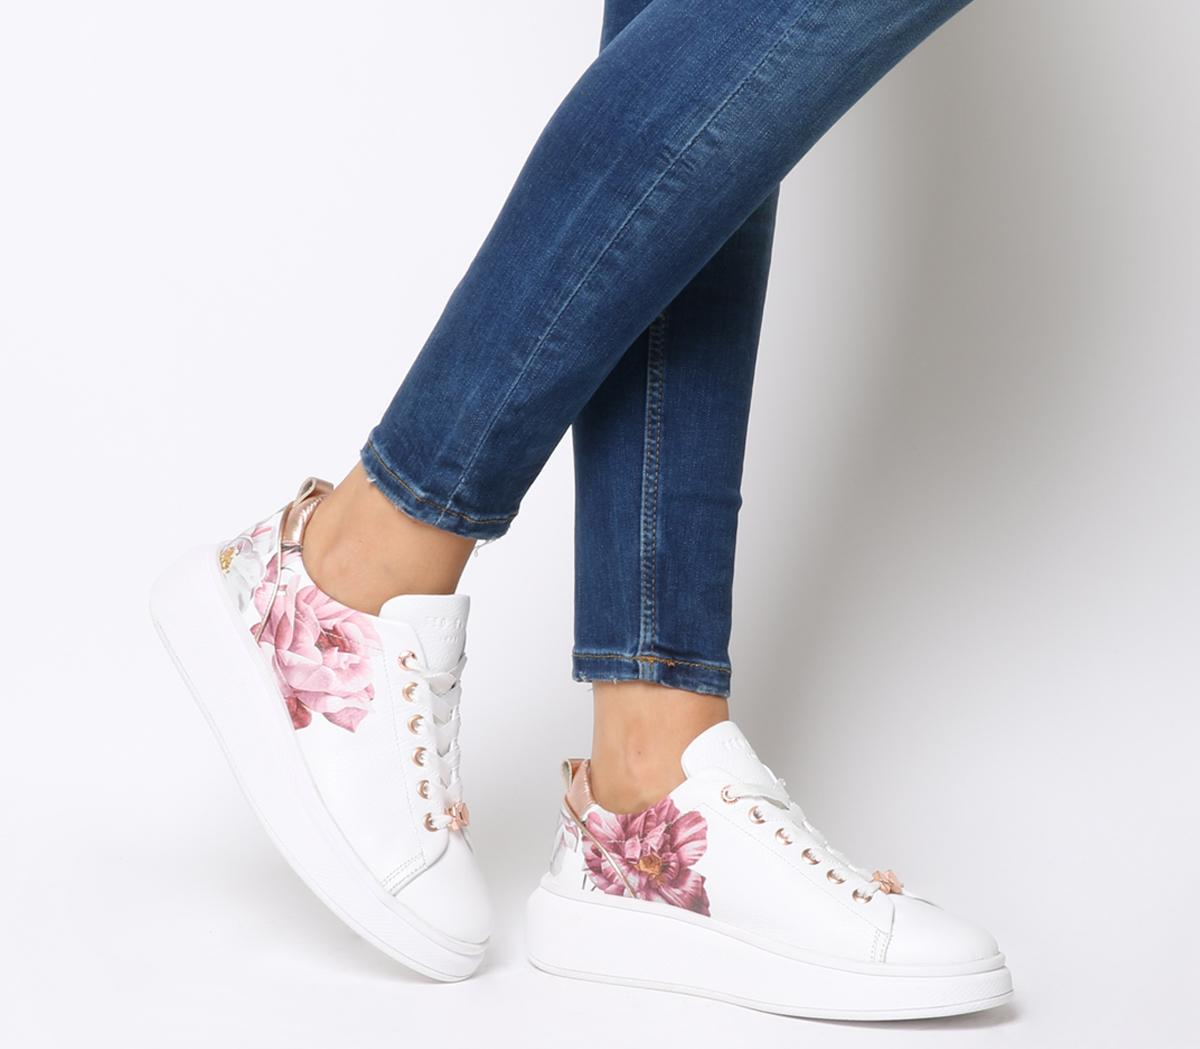 Ted Baker Ailbe 2 Sneakers White Iguazu